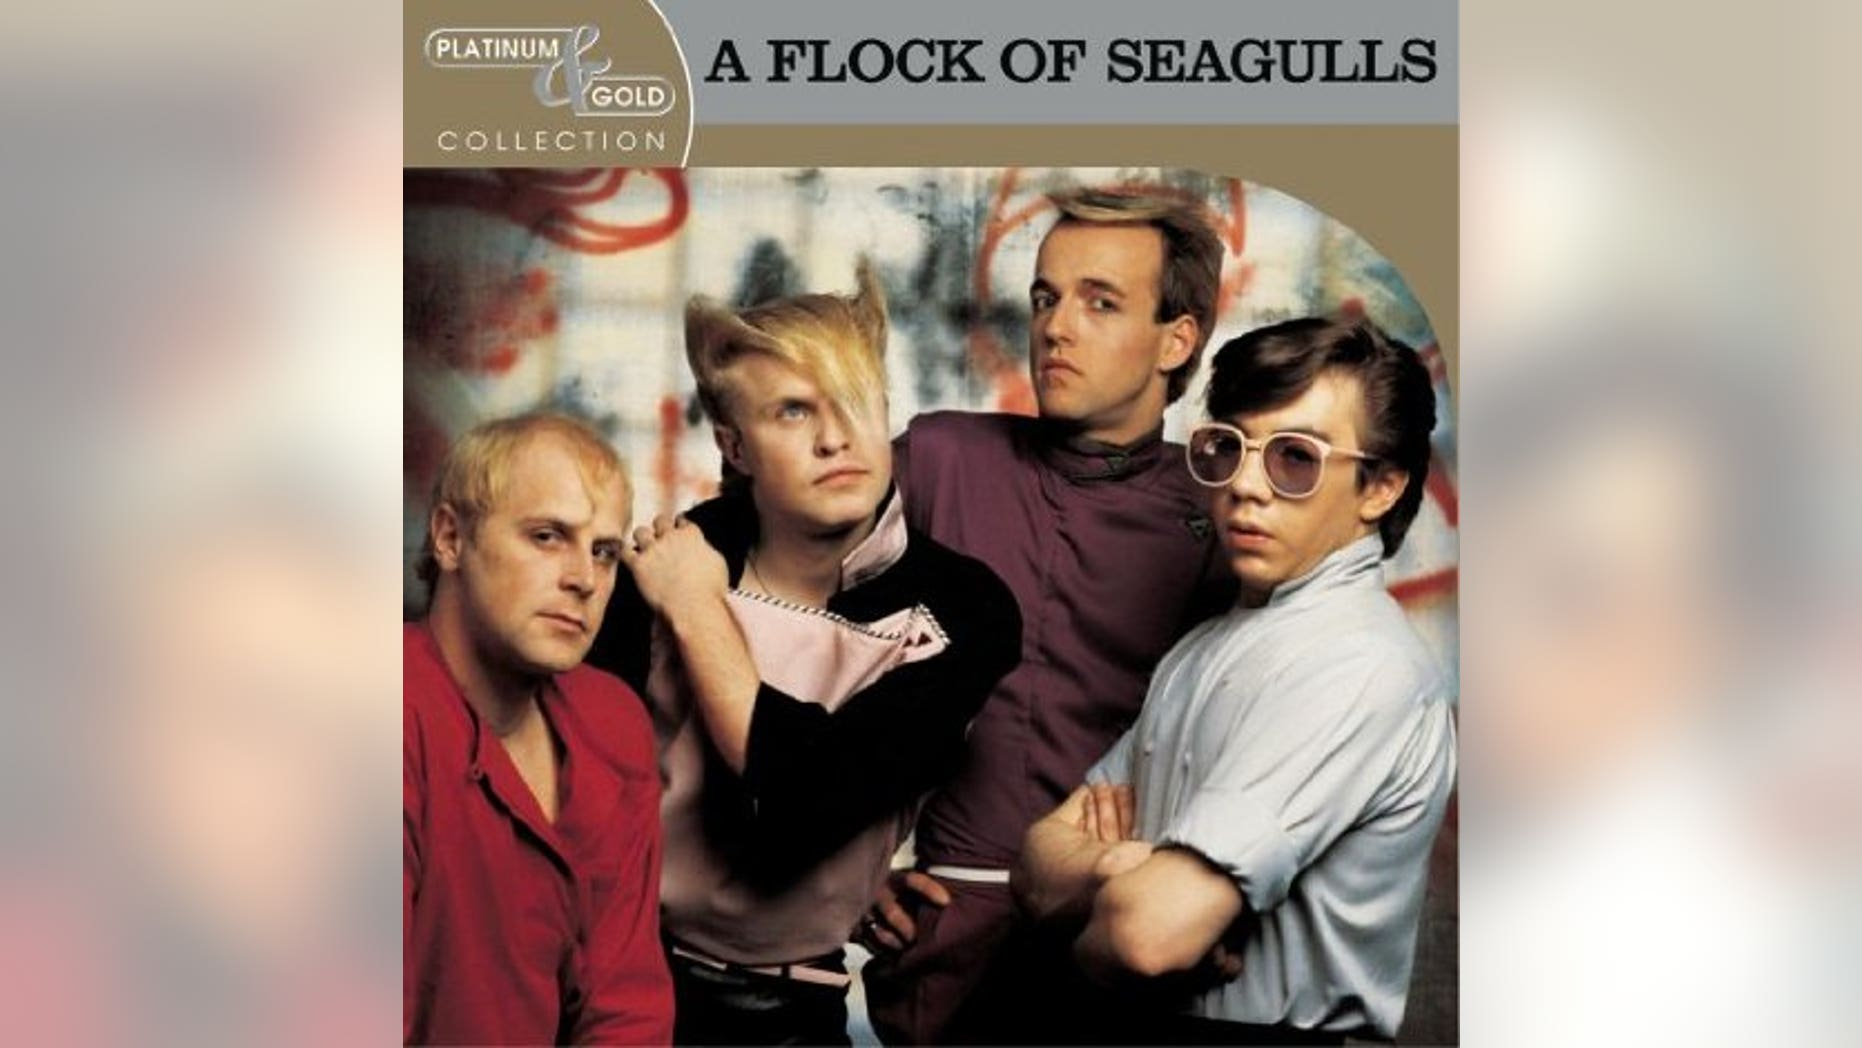 Flock of Seagulls' Platinum & Gold Collection album cover is shown.